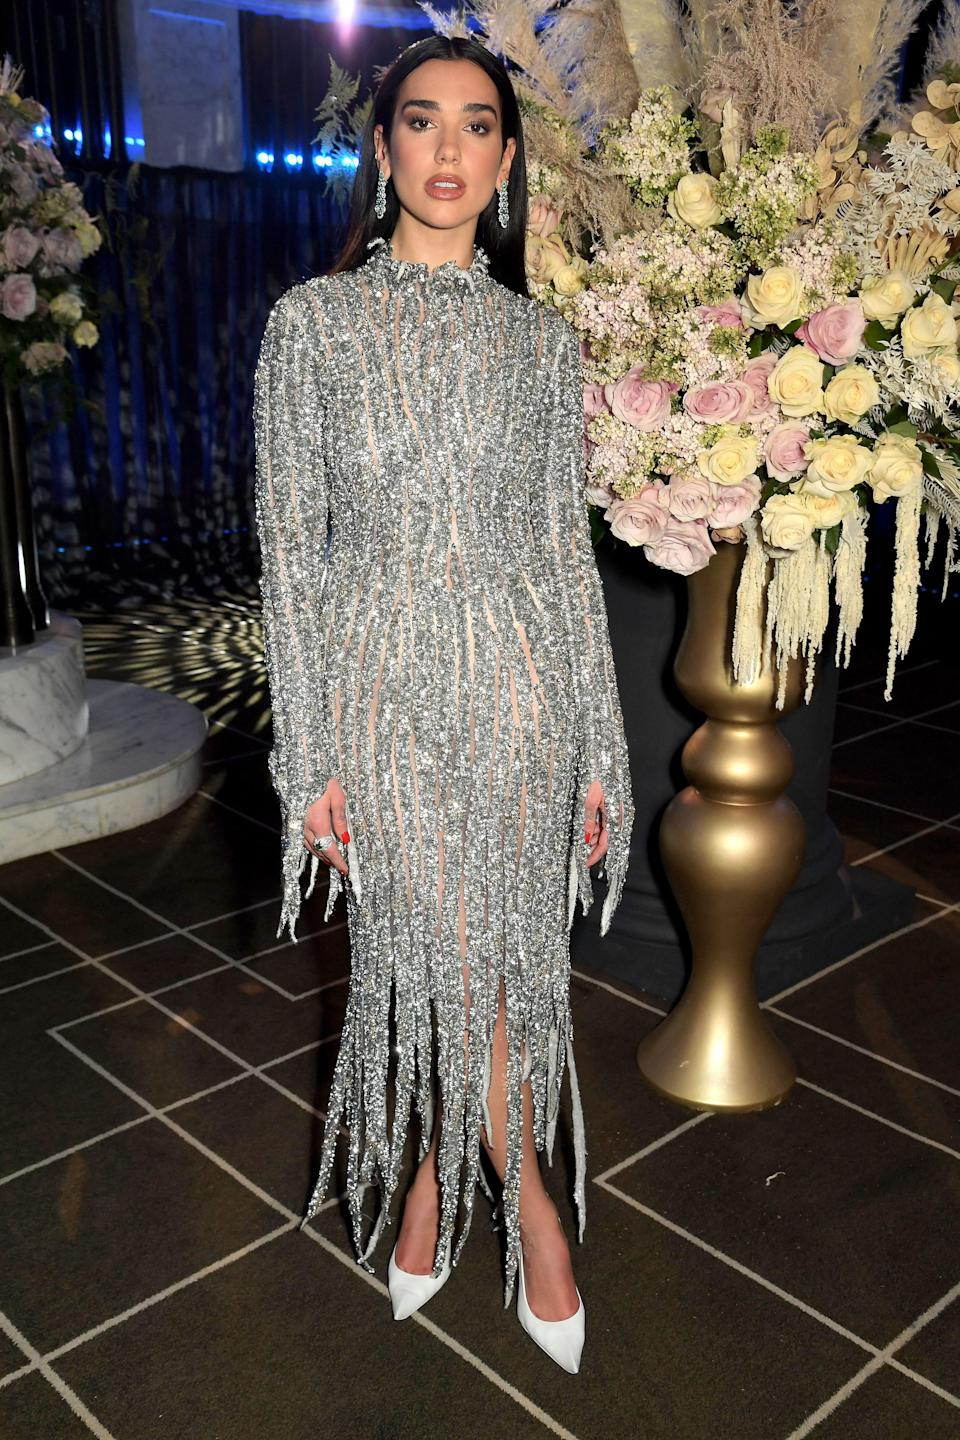 …and then this sparkling Balenciaga, both worn at Elton John's party. Two turtlenecks, both alike in dignity.